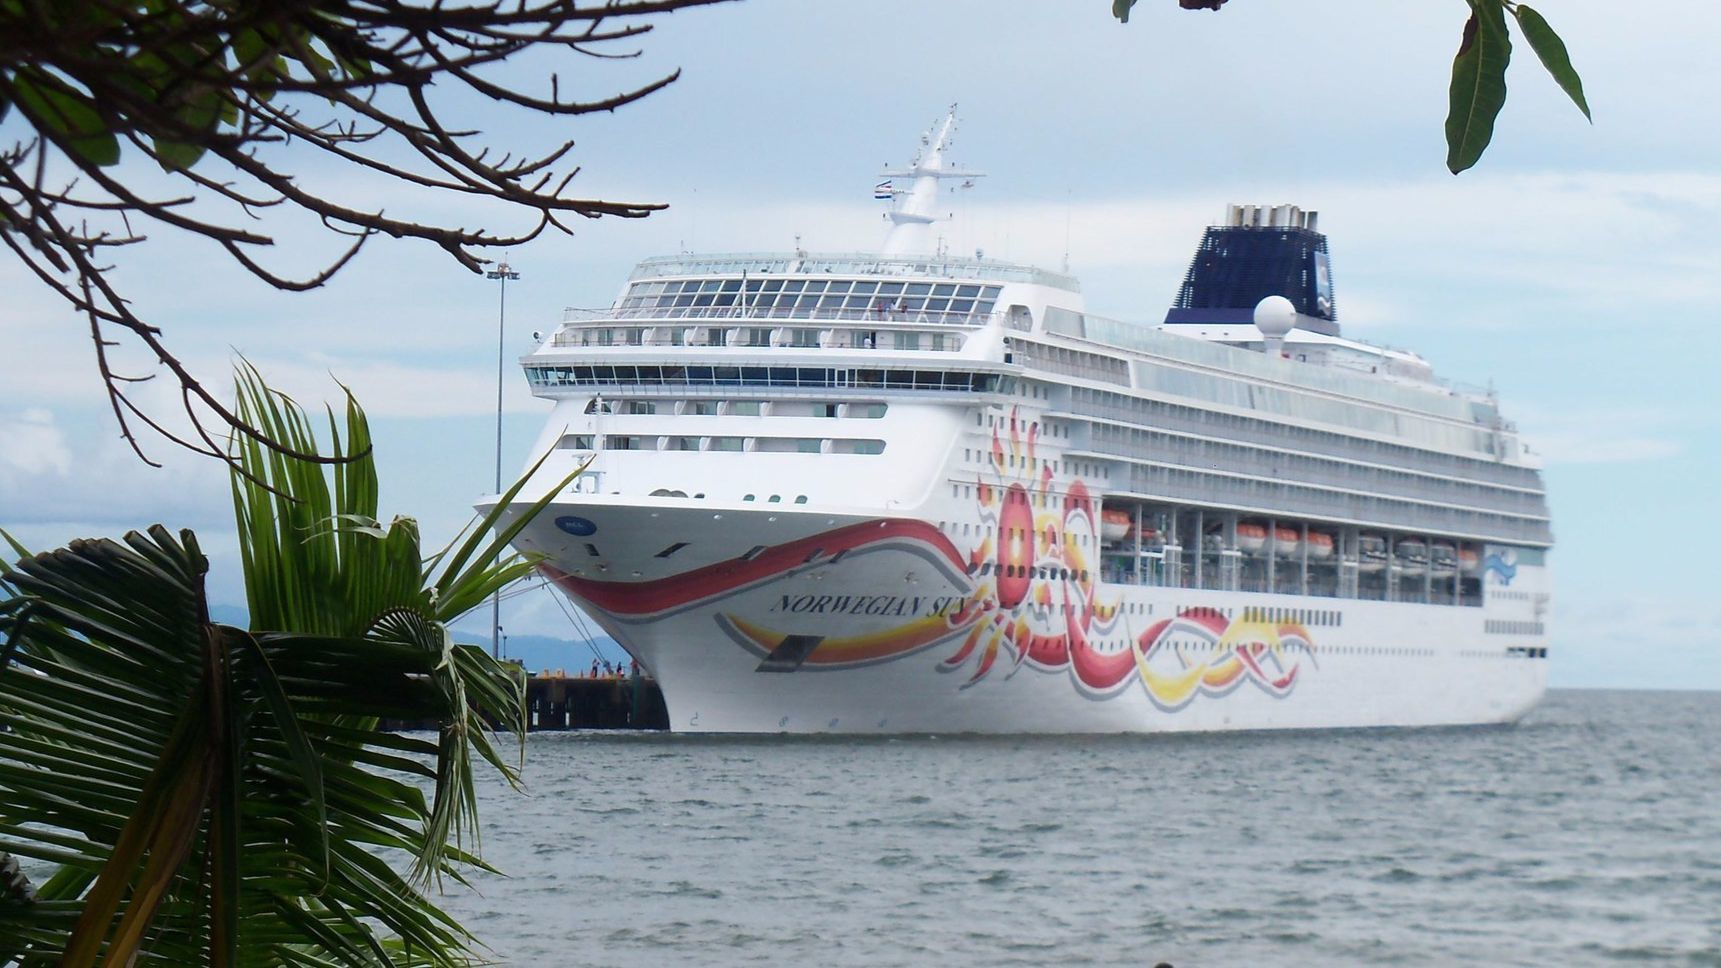 Norwegian taps port canaveral for cuba cruises la times - Port canaveral cruise lines ...